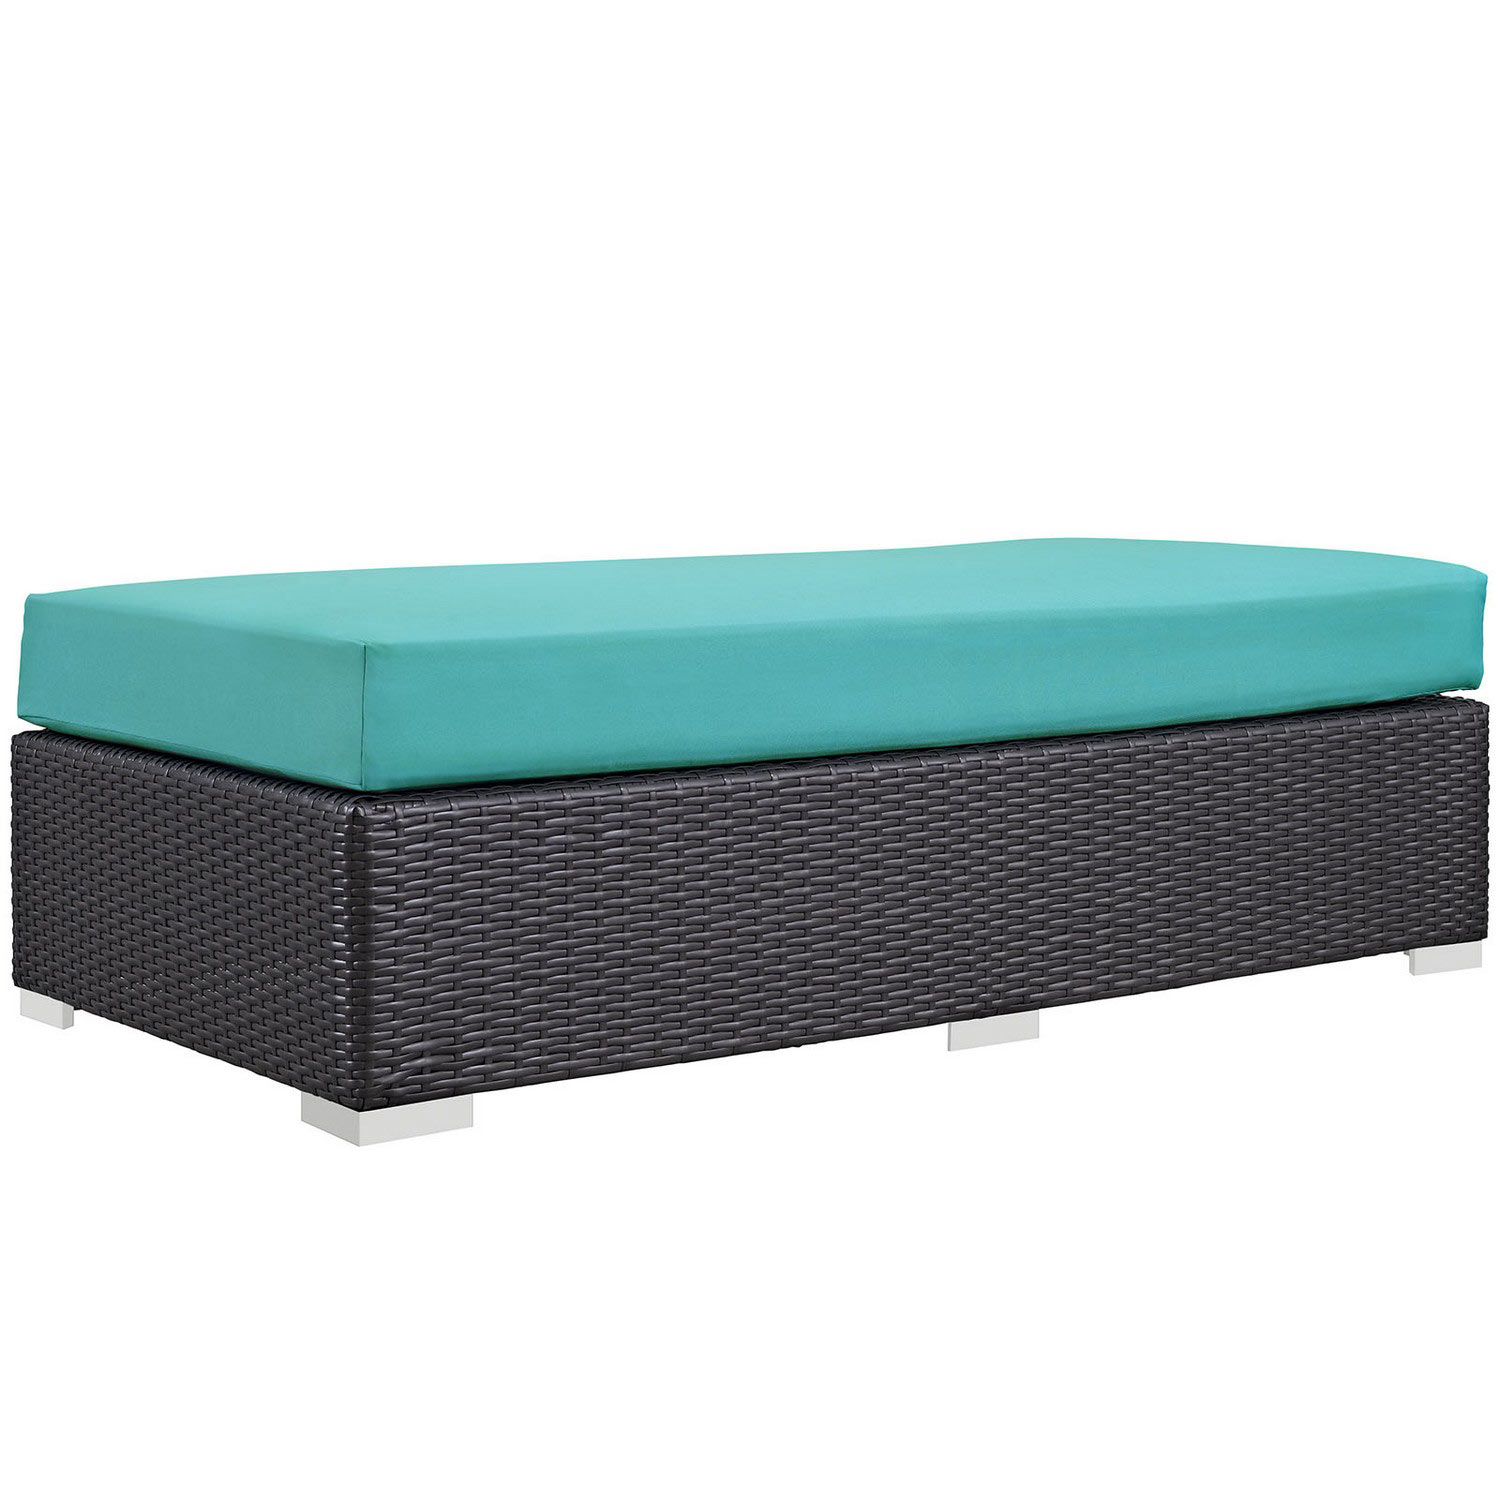 Modway Convene Outdoor Patio Fabric Rectangle Ottoman - Espresso Turquoise